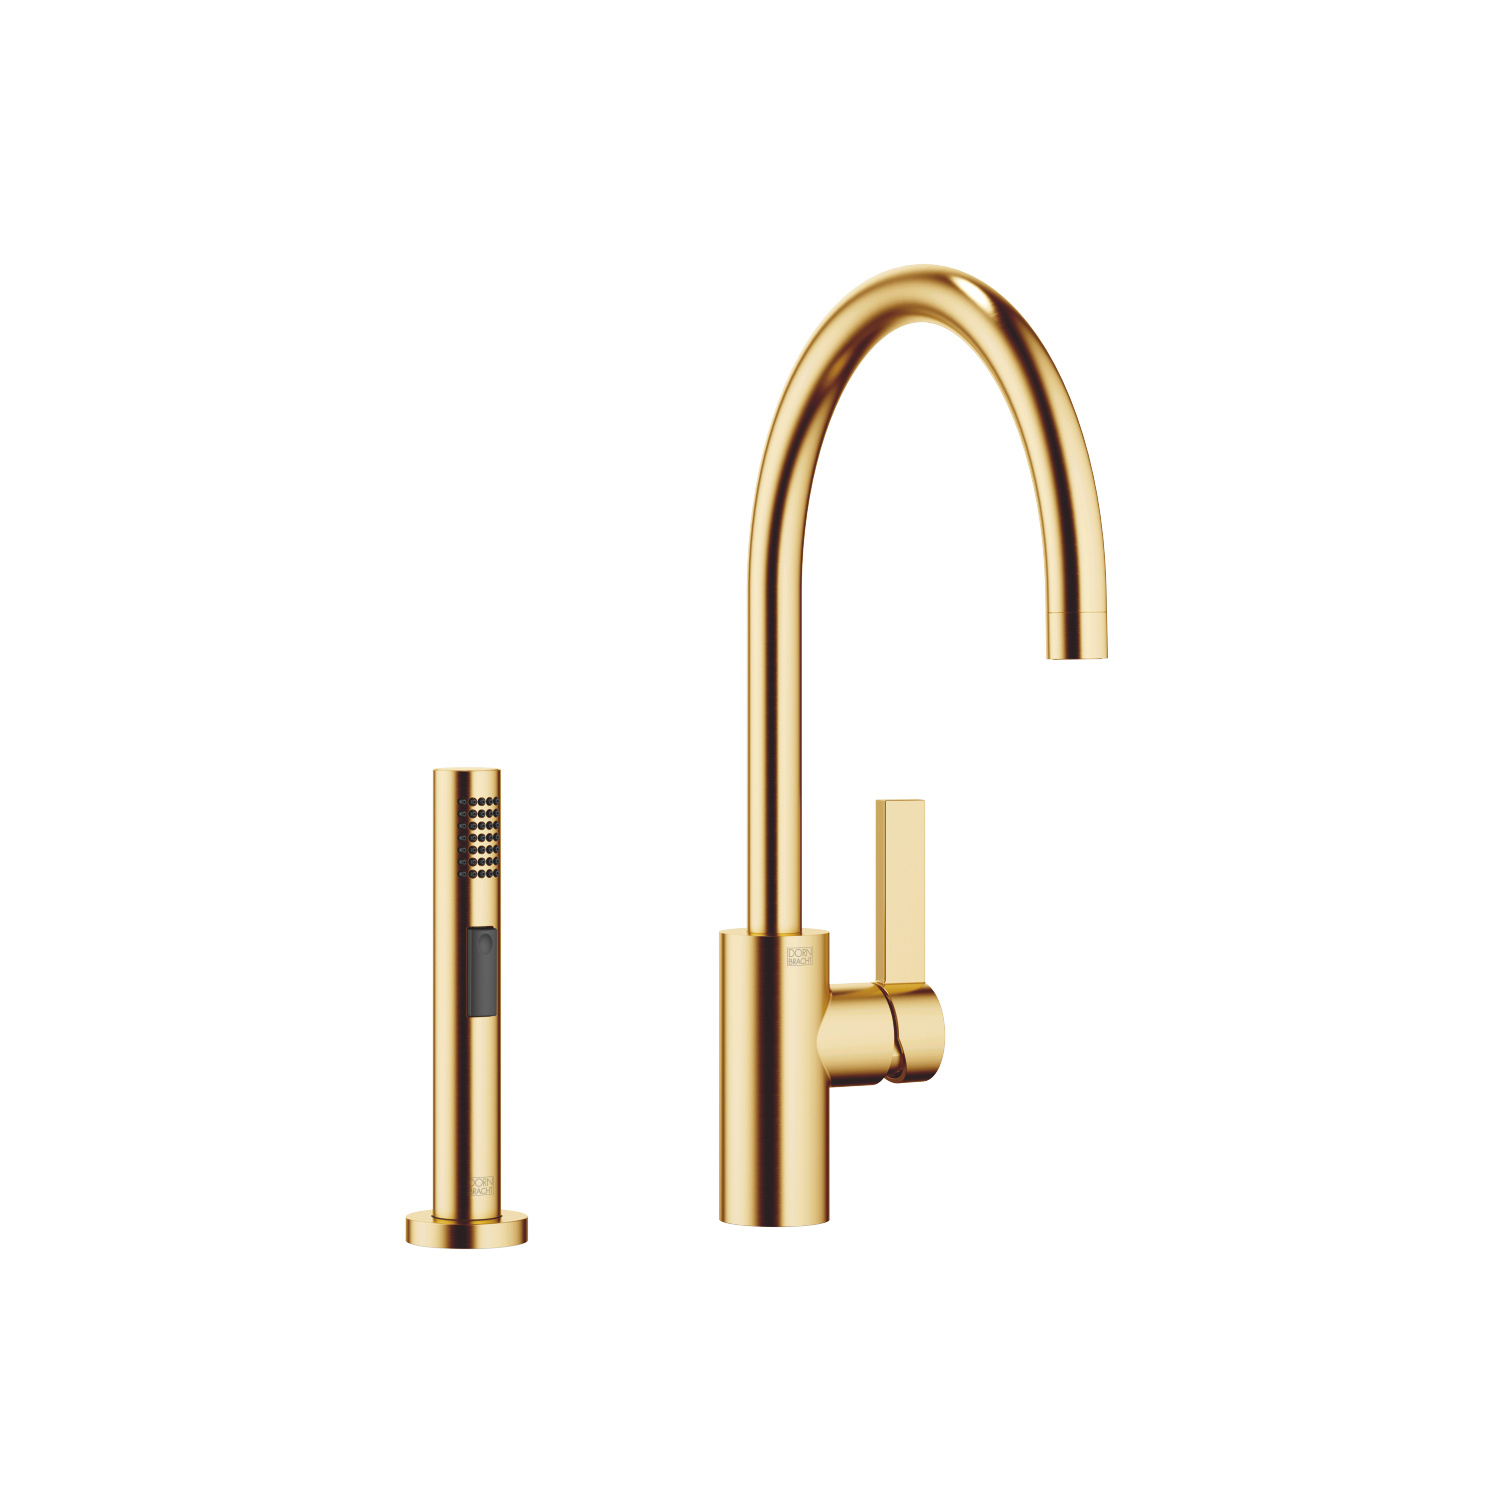 Single-lever mixer with rinsing spray set - brushed Durabrass